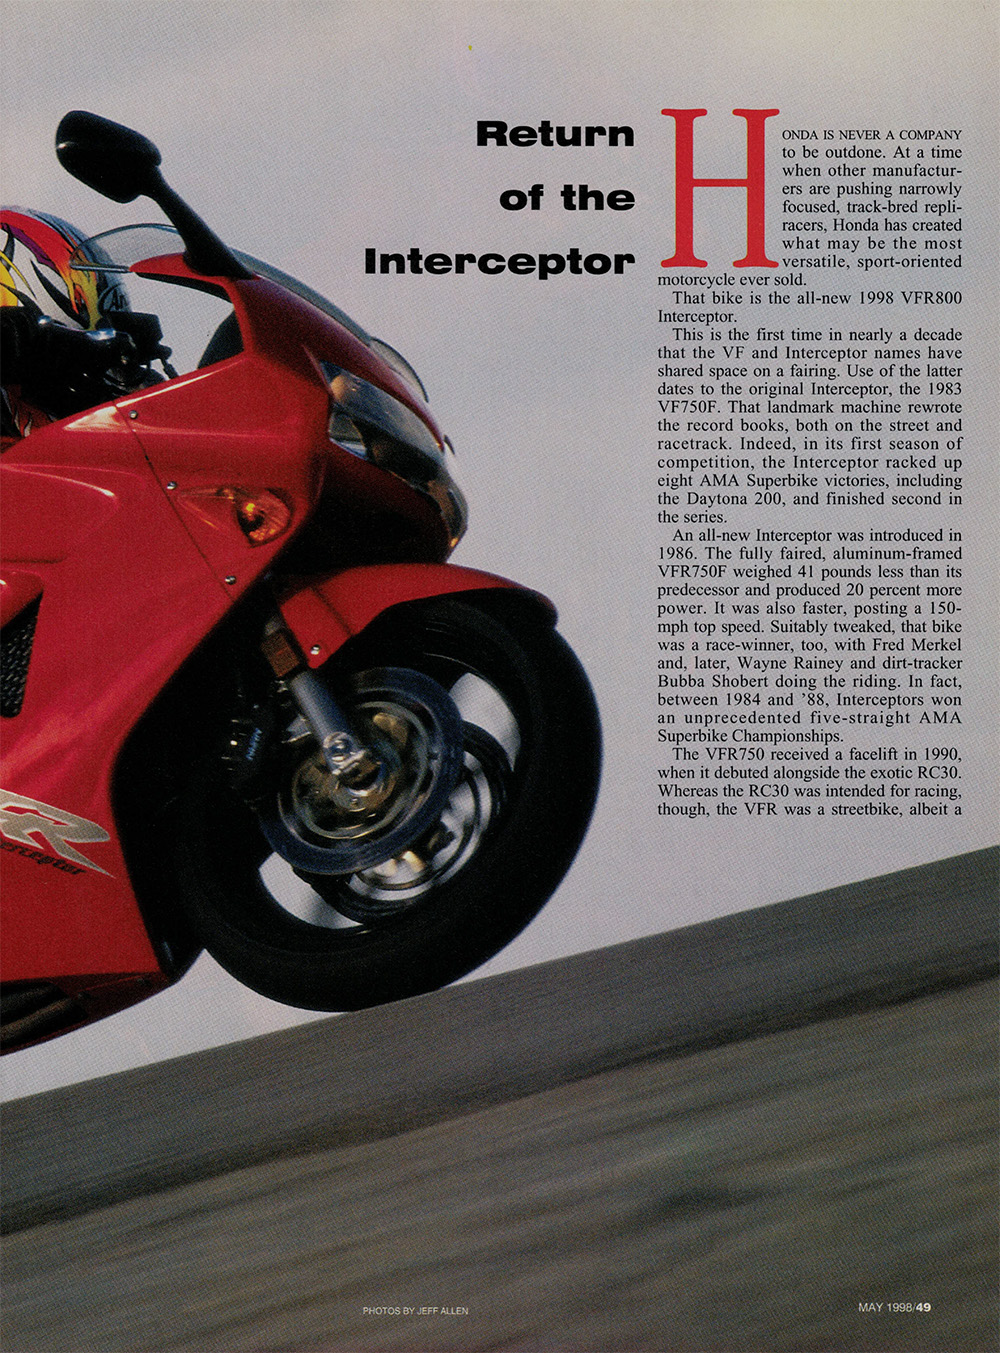 1998 Honda VFR800Fi road test 2.jpg